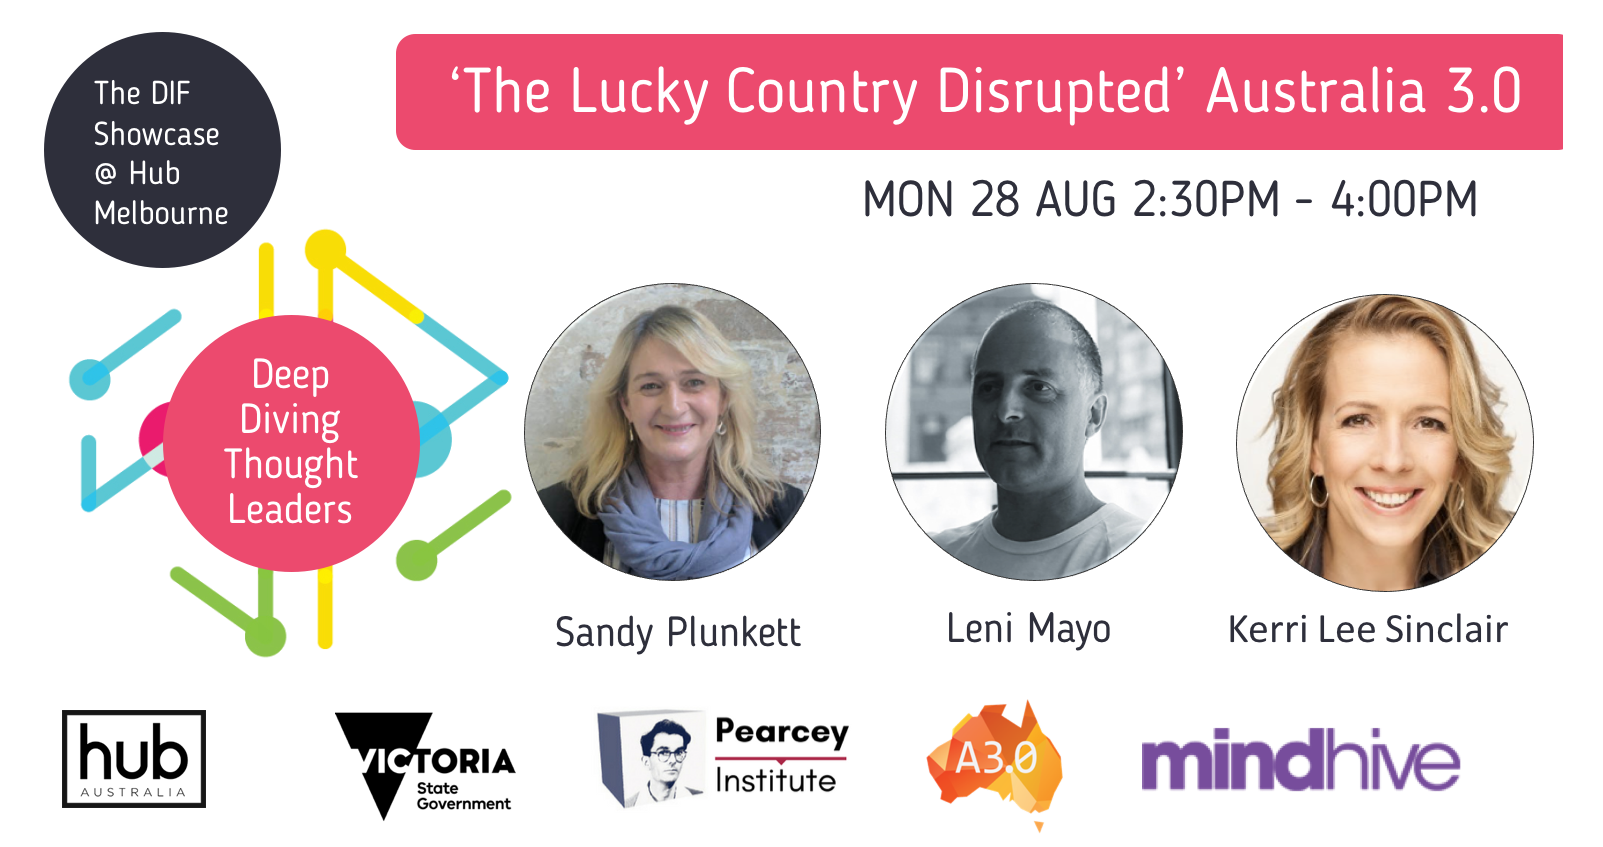 A3.0 Lucky Country Disrupted